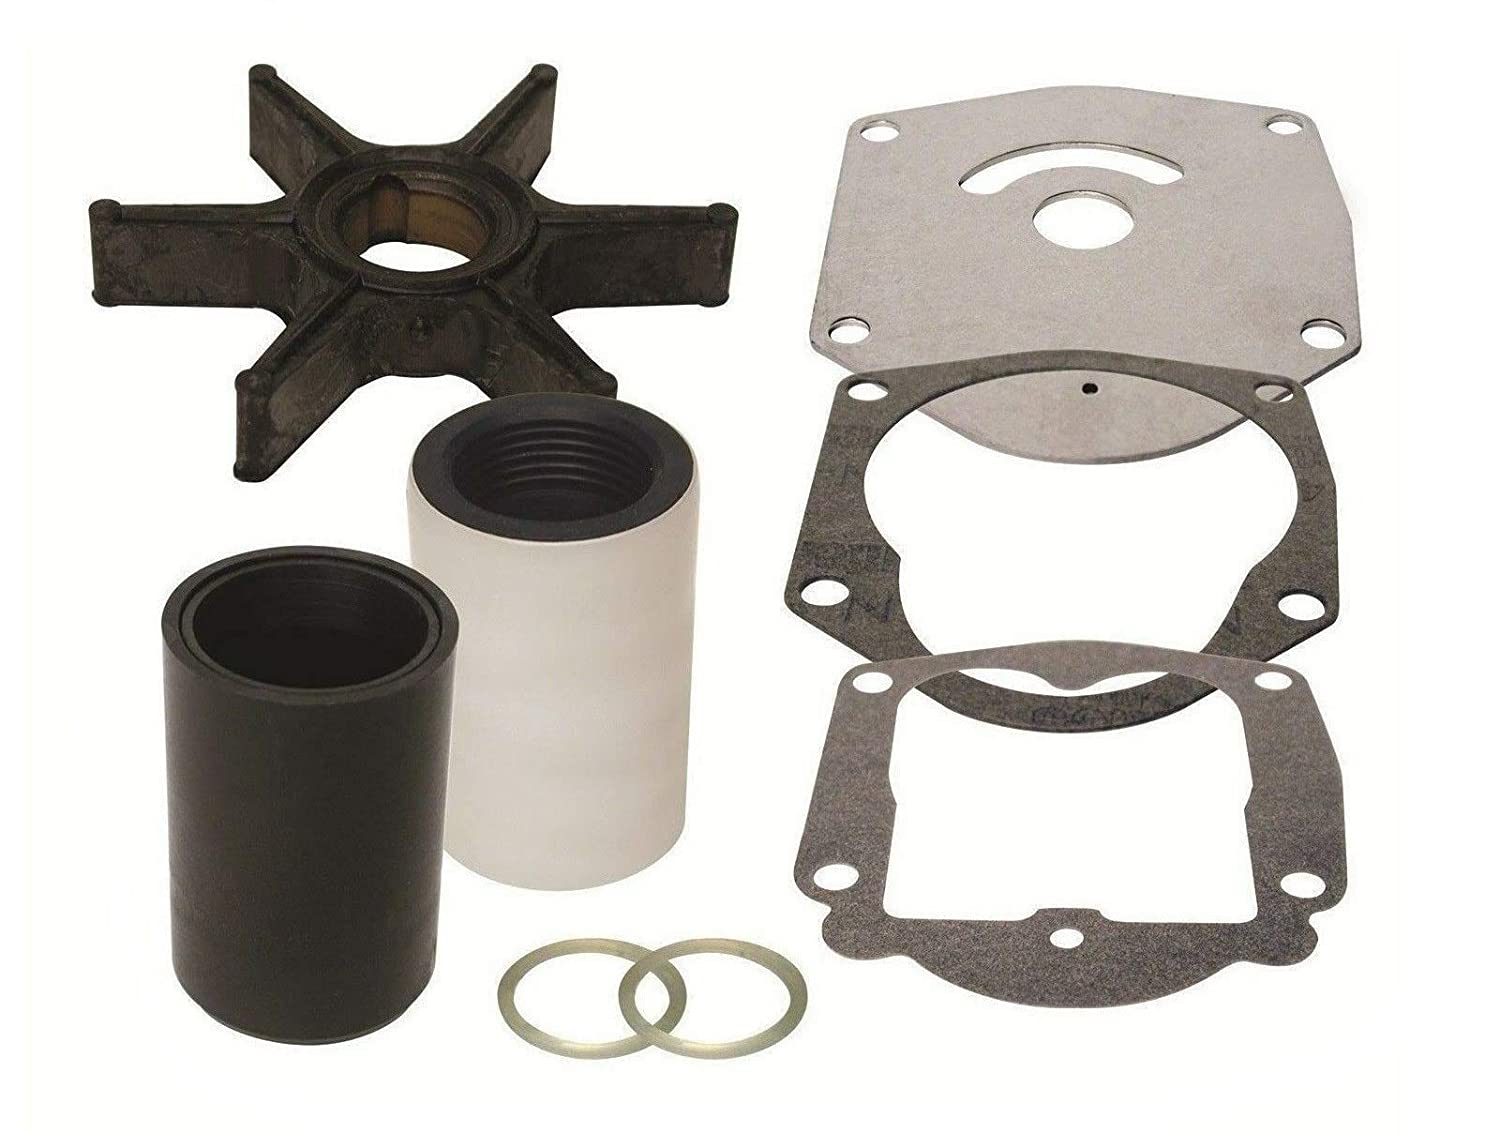 GLM Water Pump Impeller Service Kit for Mercury 4 Stroke 25 30 40 45 50 Hp  Replaces 821354A2 Read Product Description for Exact Applications